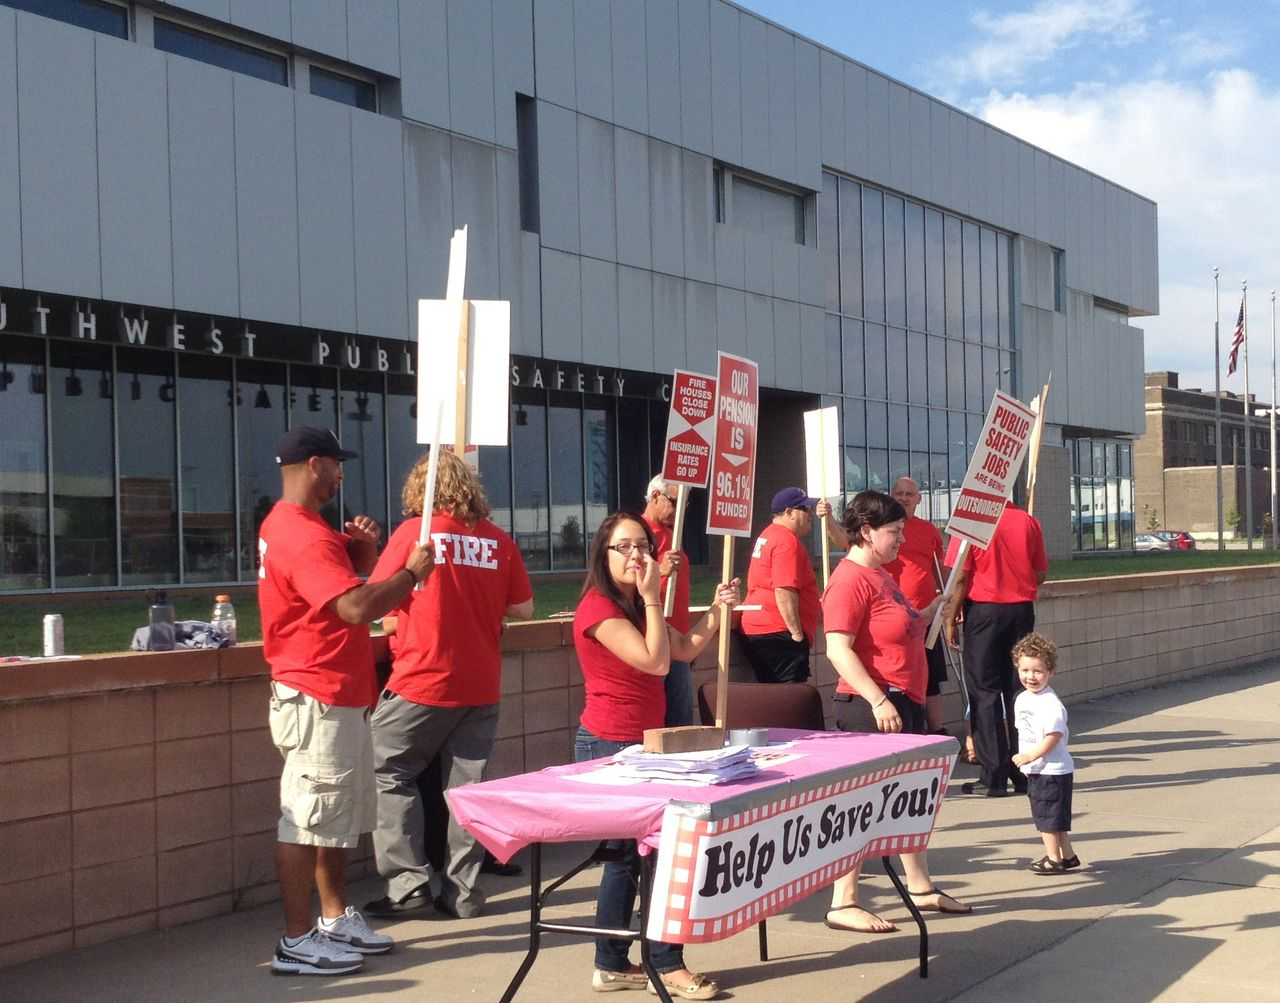 The Detroit Public Safety Workers Action Group picketing at the Southwest Public Safety Center